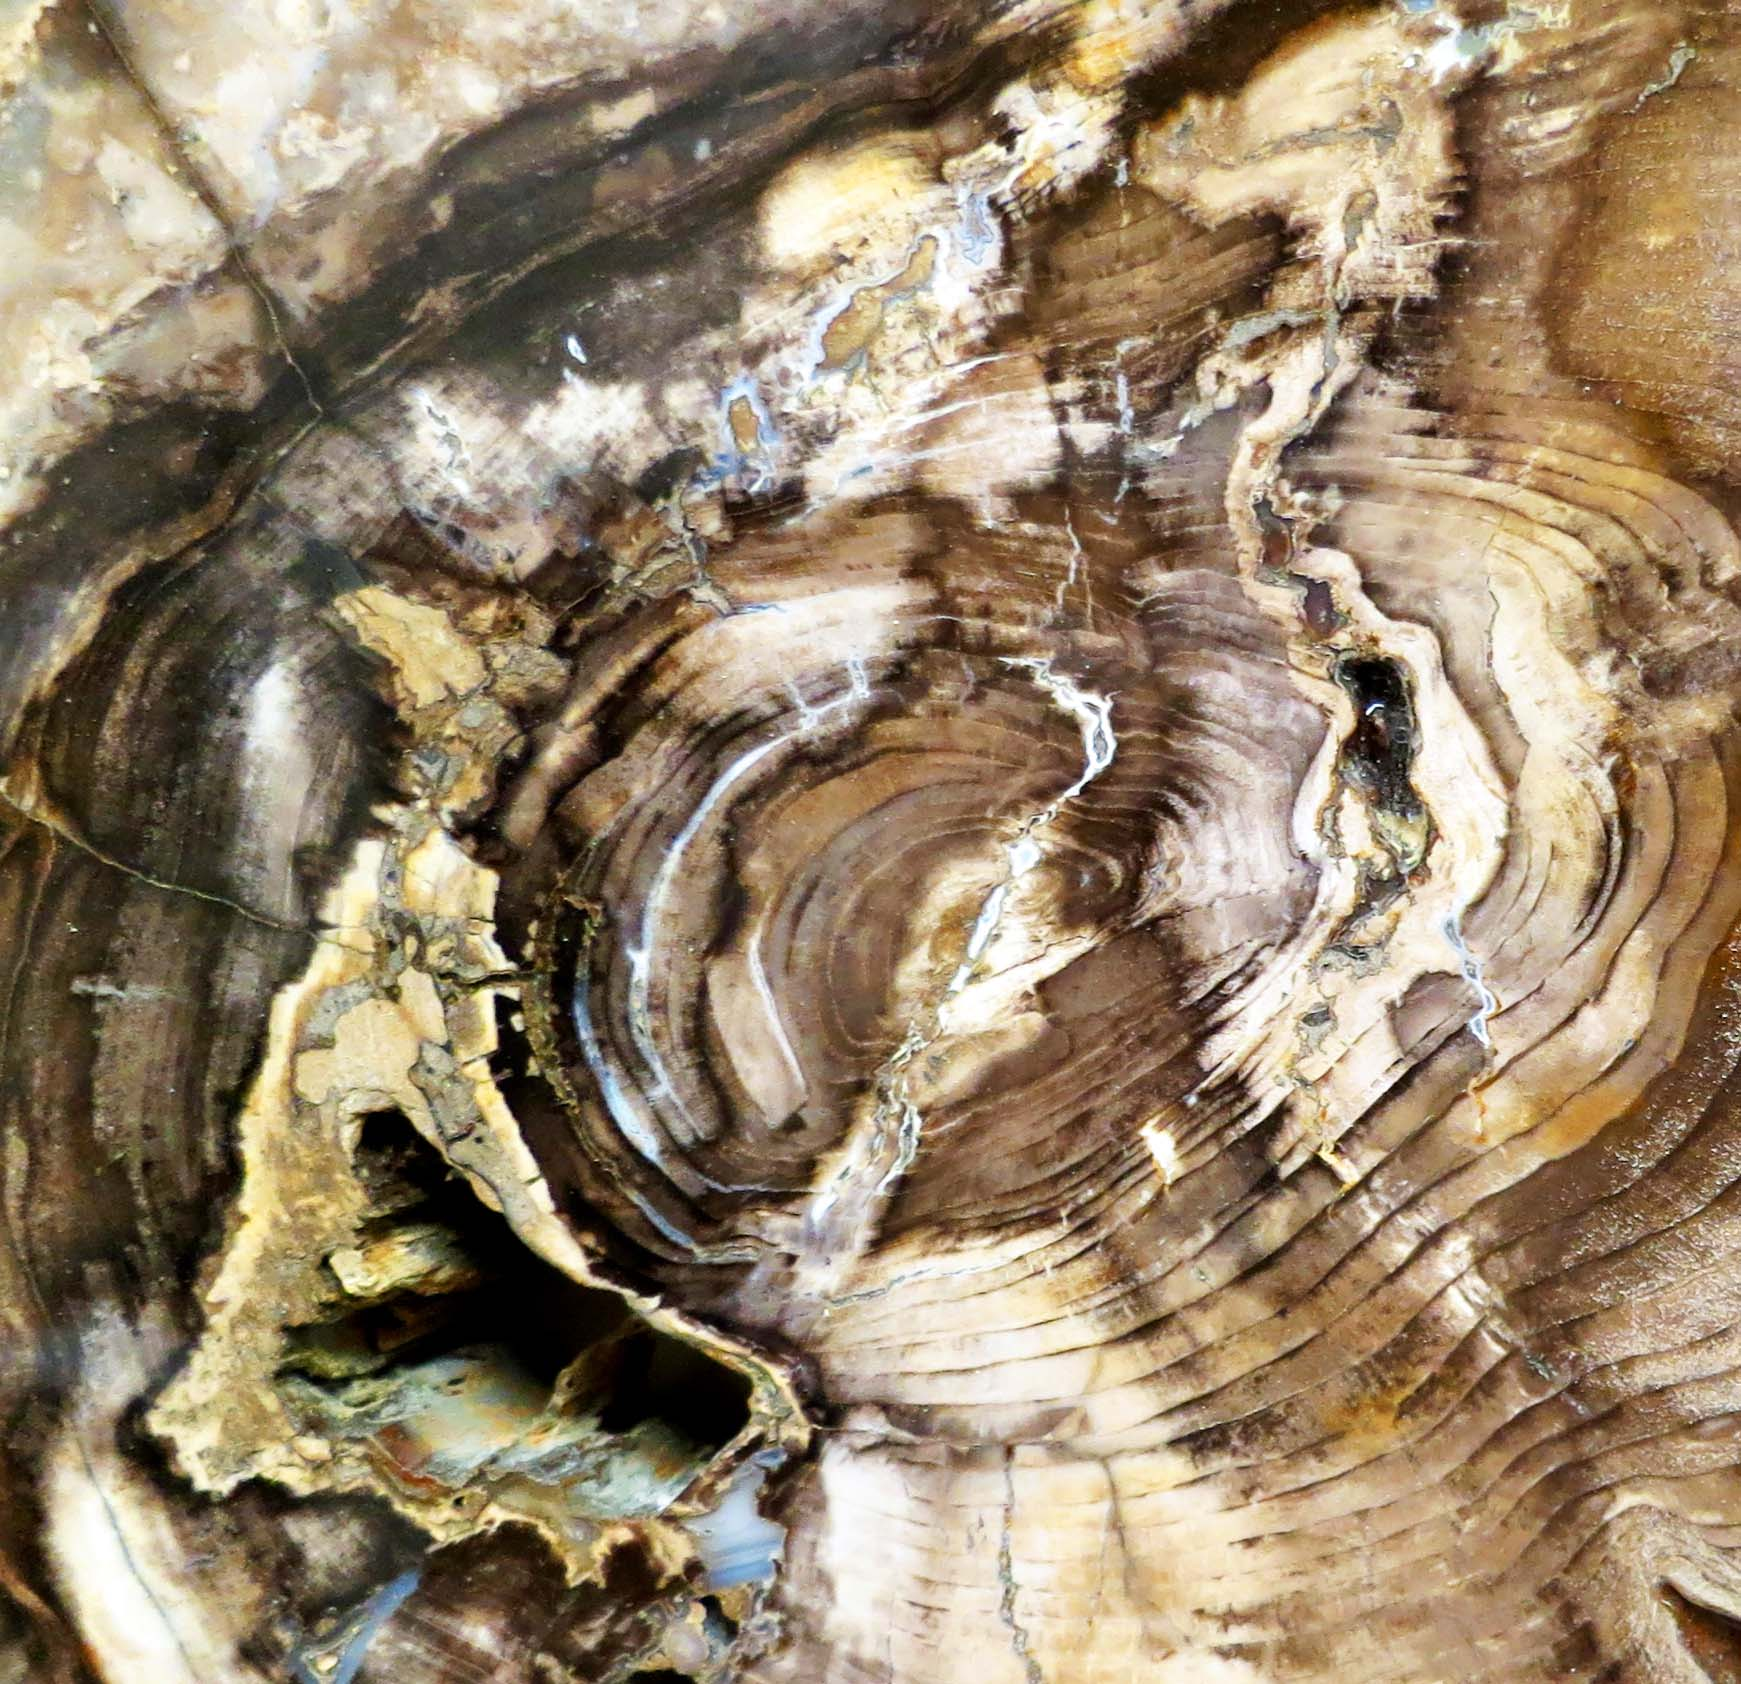 Petrified wood found at the Crater Rock Museum in Central Point, Oregon. Photo by Curtis Mekemson.